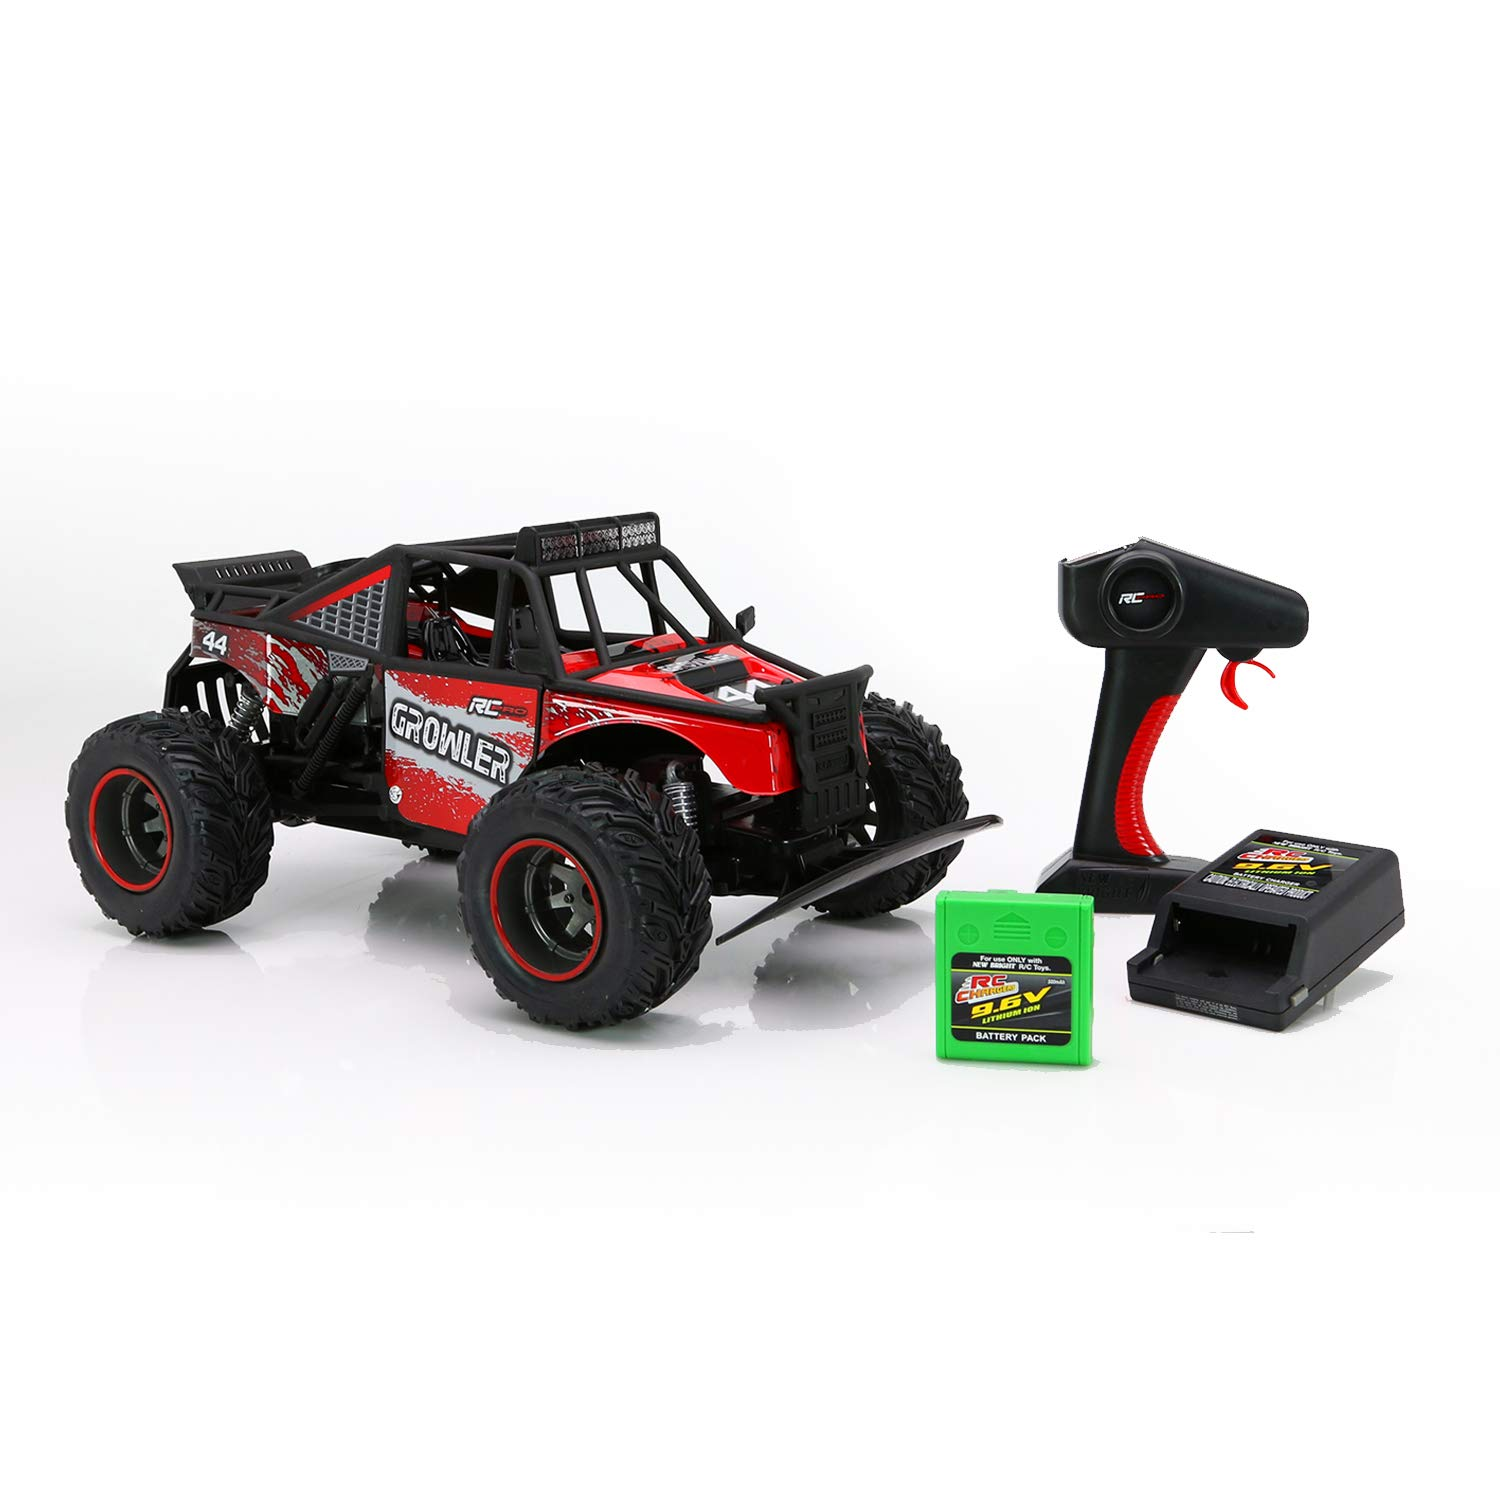 Great RC truck